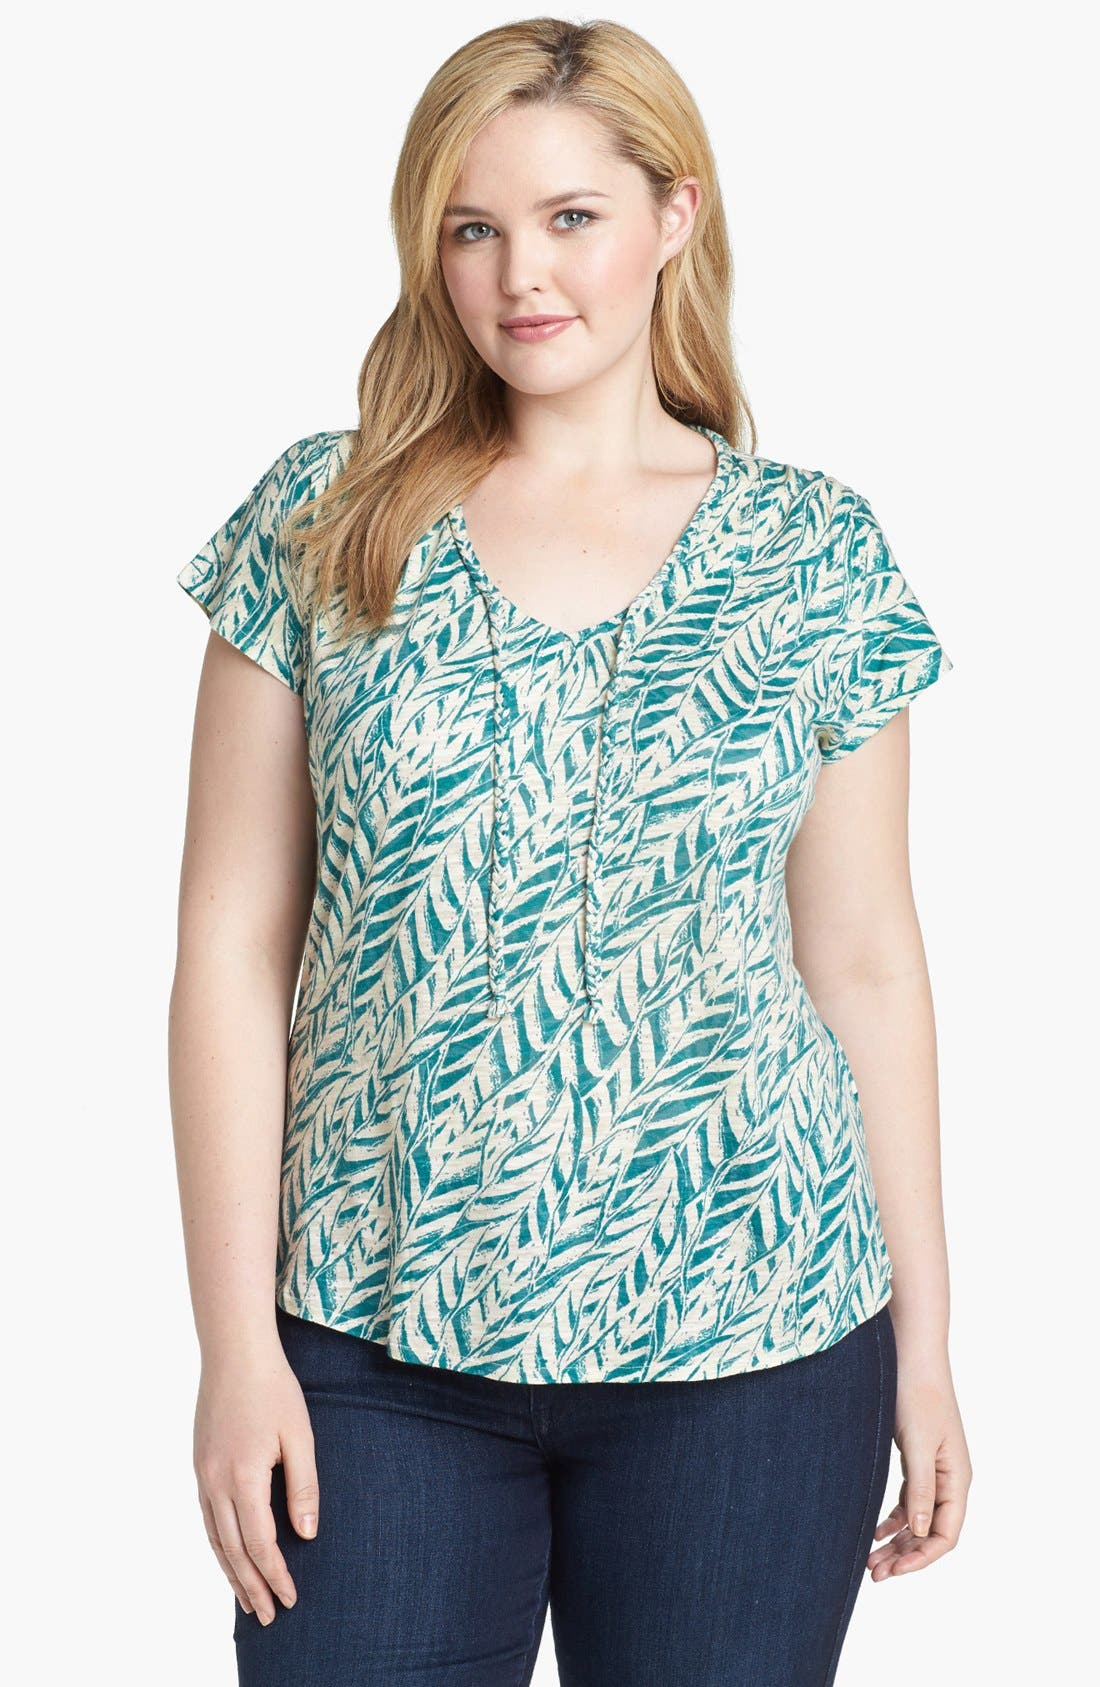 Alternate Image 1 Selected - Lucky Brand 'Myra' Tropical Print Top (Plus Size)